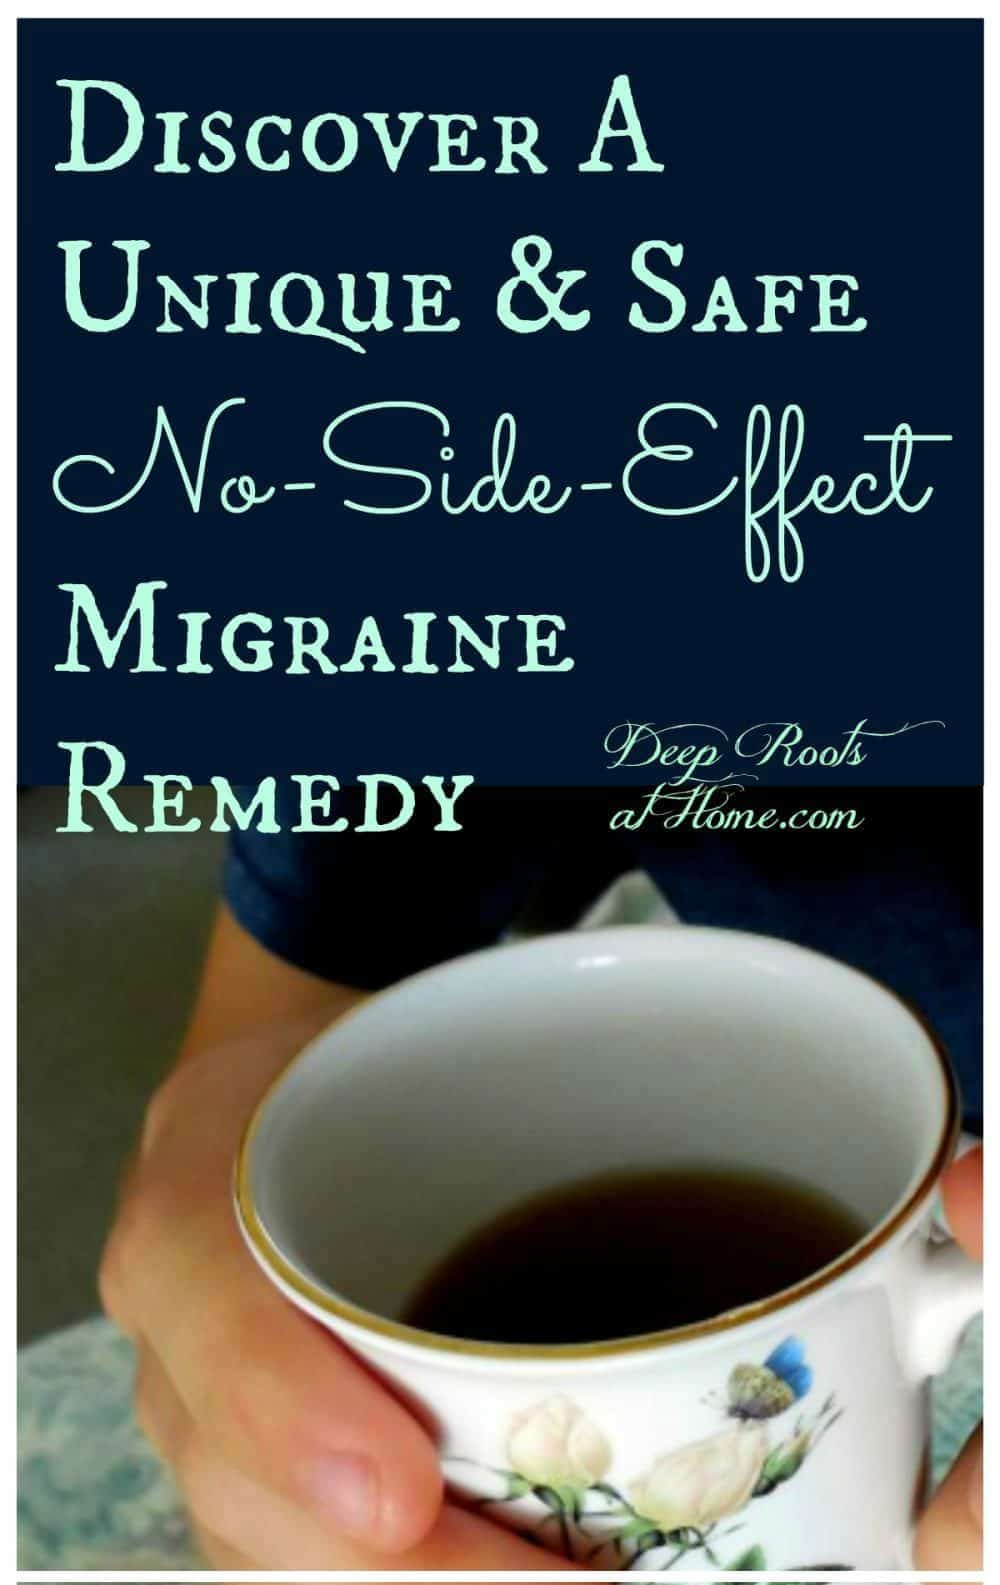 Discover A Unique & Safe No-Side-Effect Migraine Remedy. My daughter was a migraine sufferer until we made a tincture of lemon balm and feverfew to add to tea.